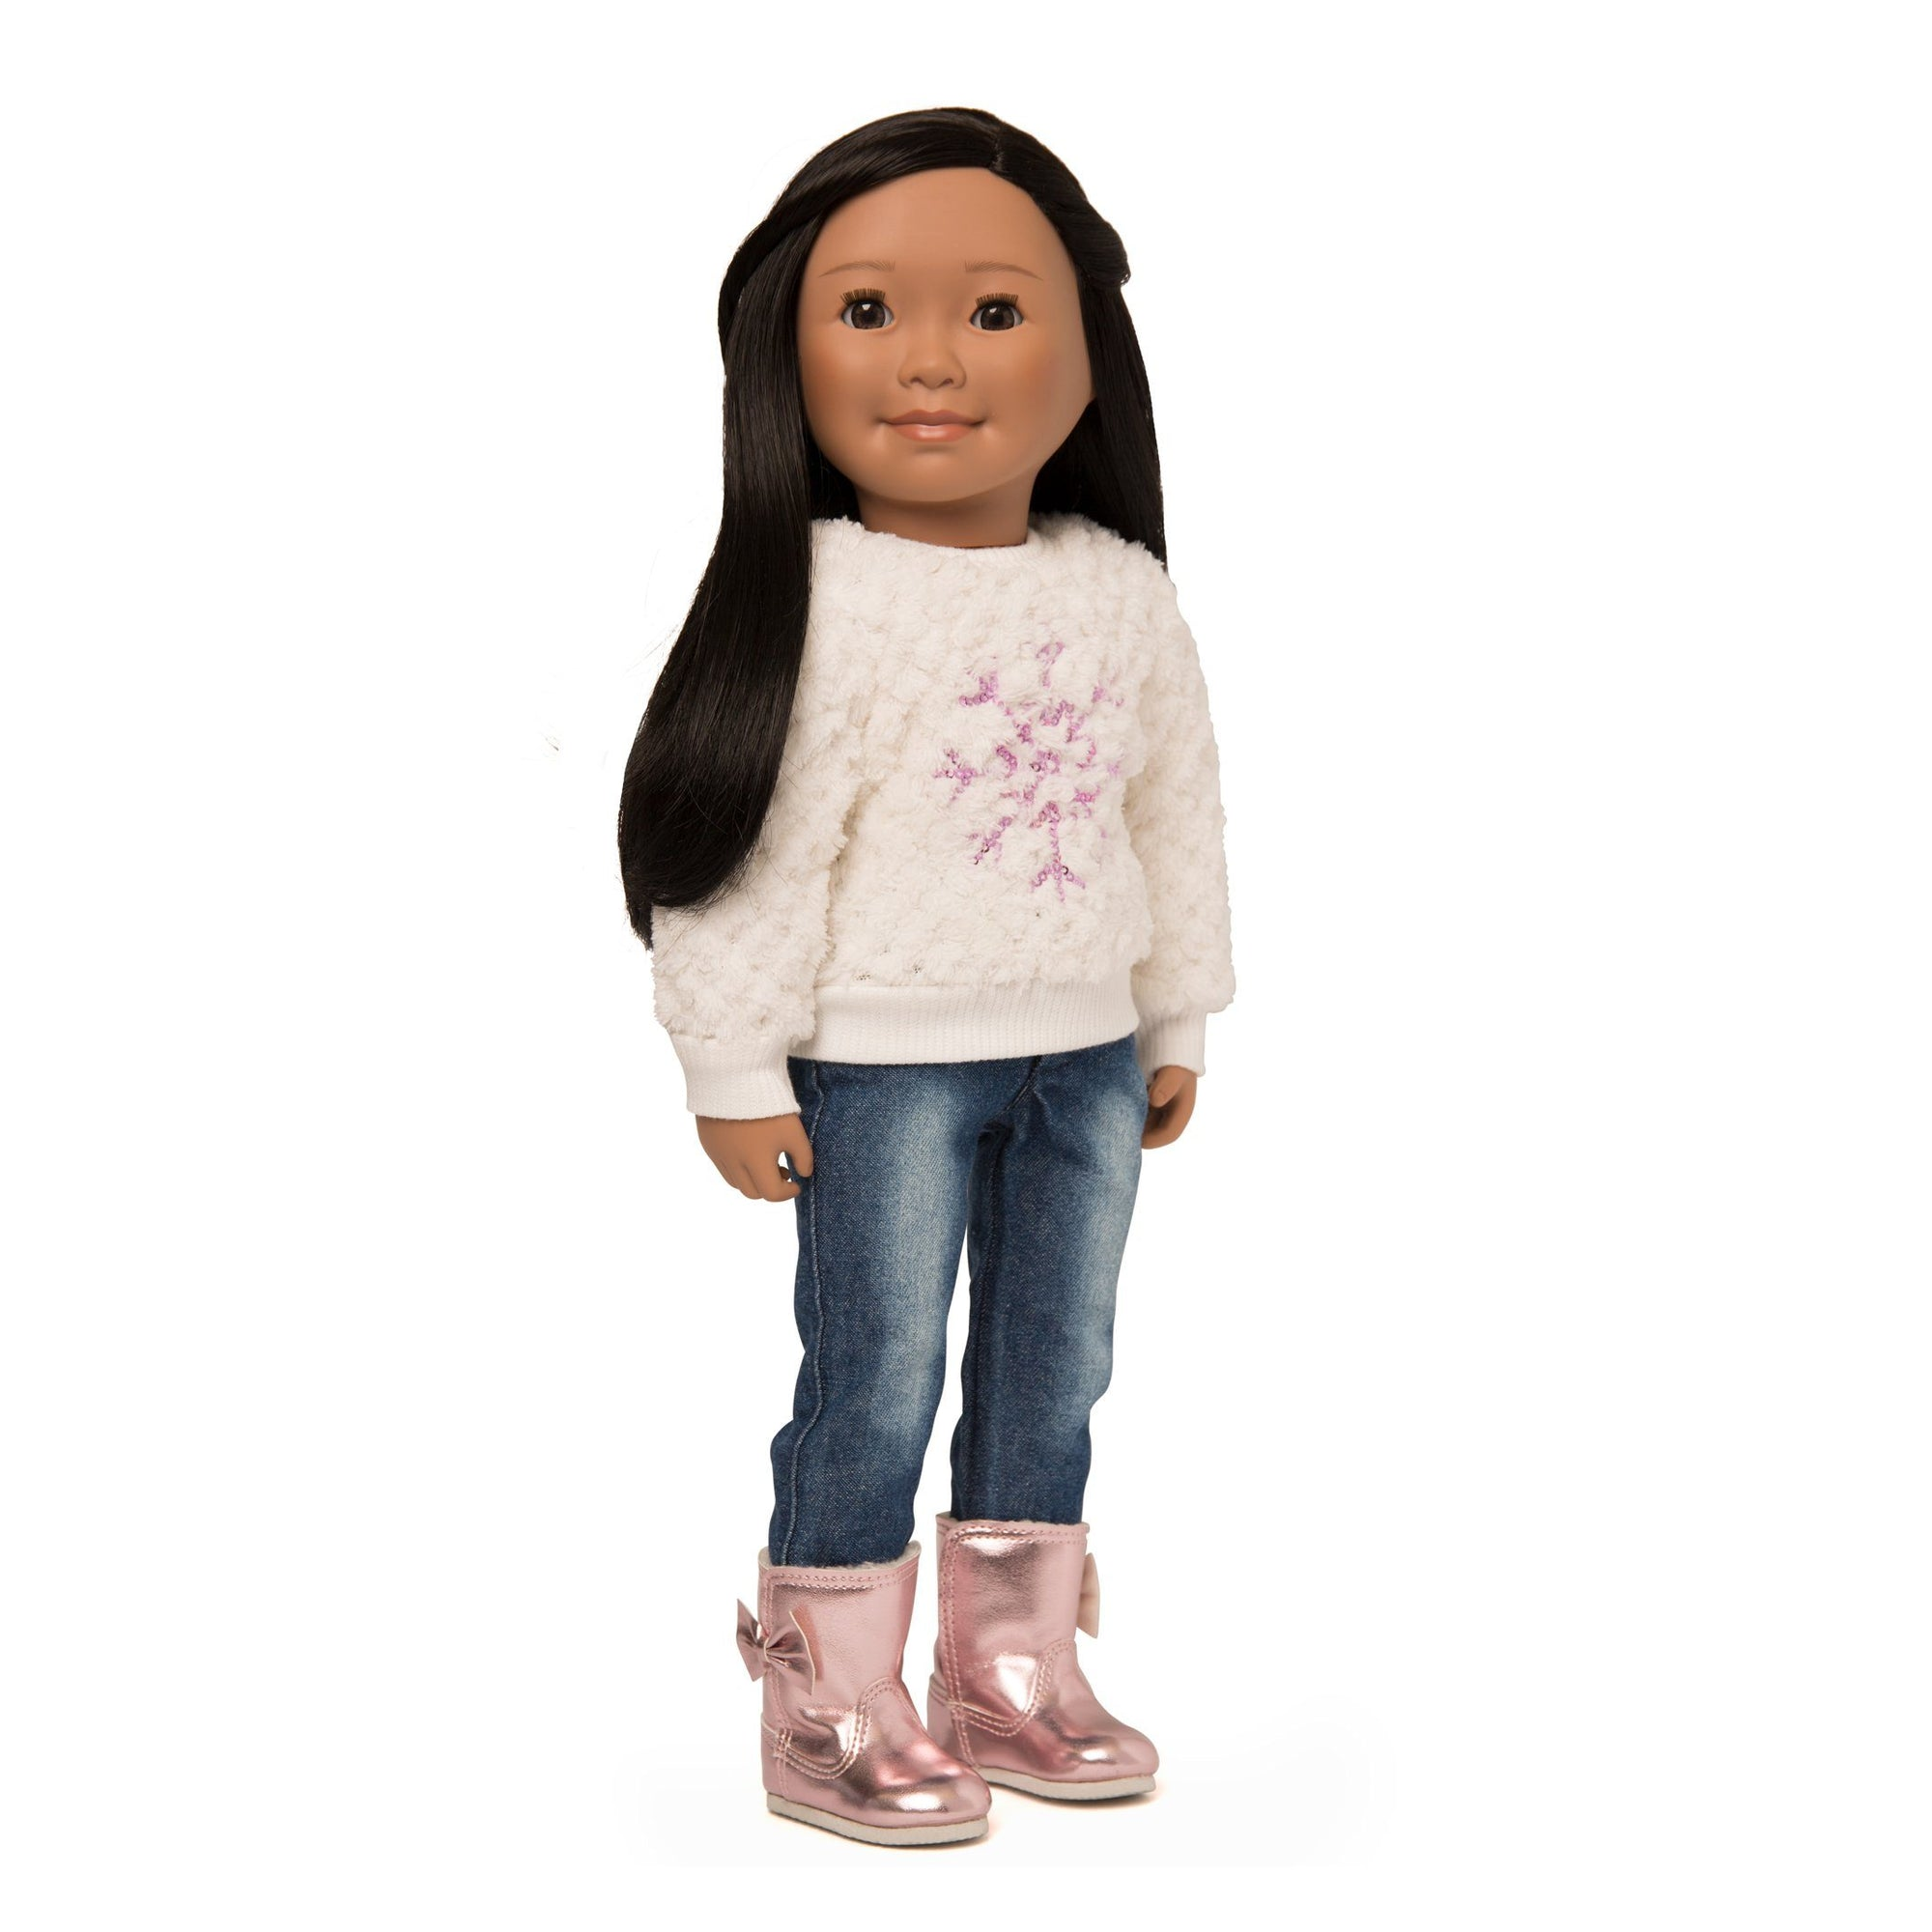 White fuzzy sweater with pink snowflake, washed jeans, and shiny pink boots with bow fits all 18 inch dolls.